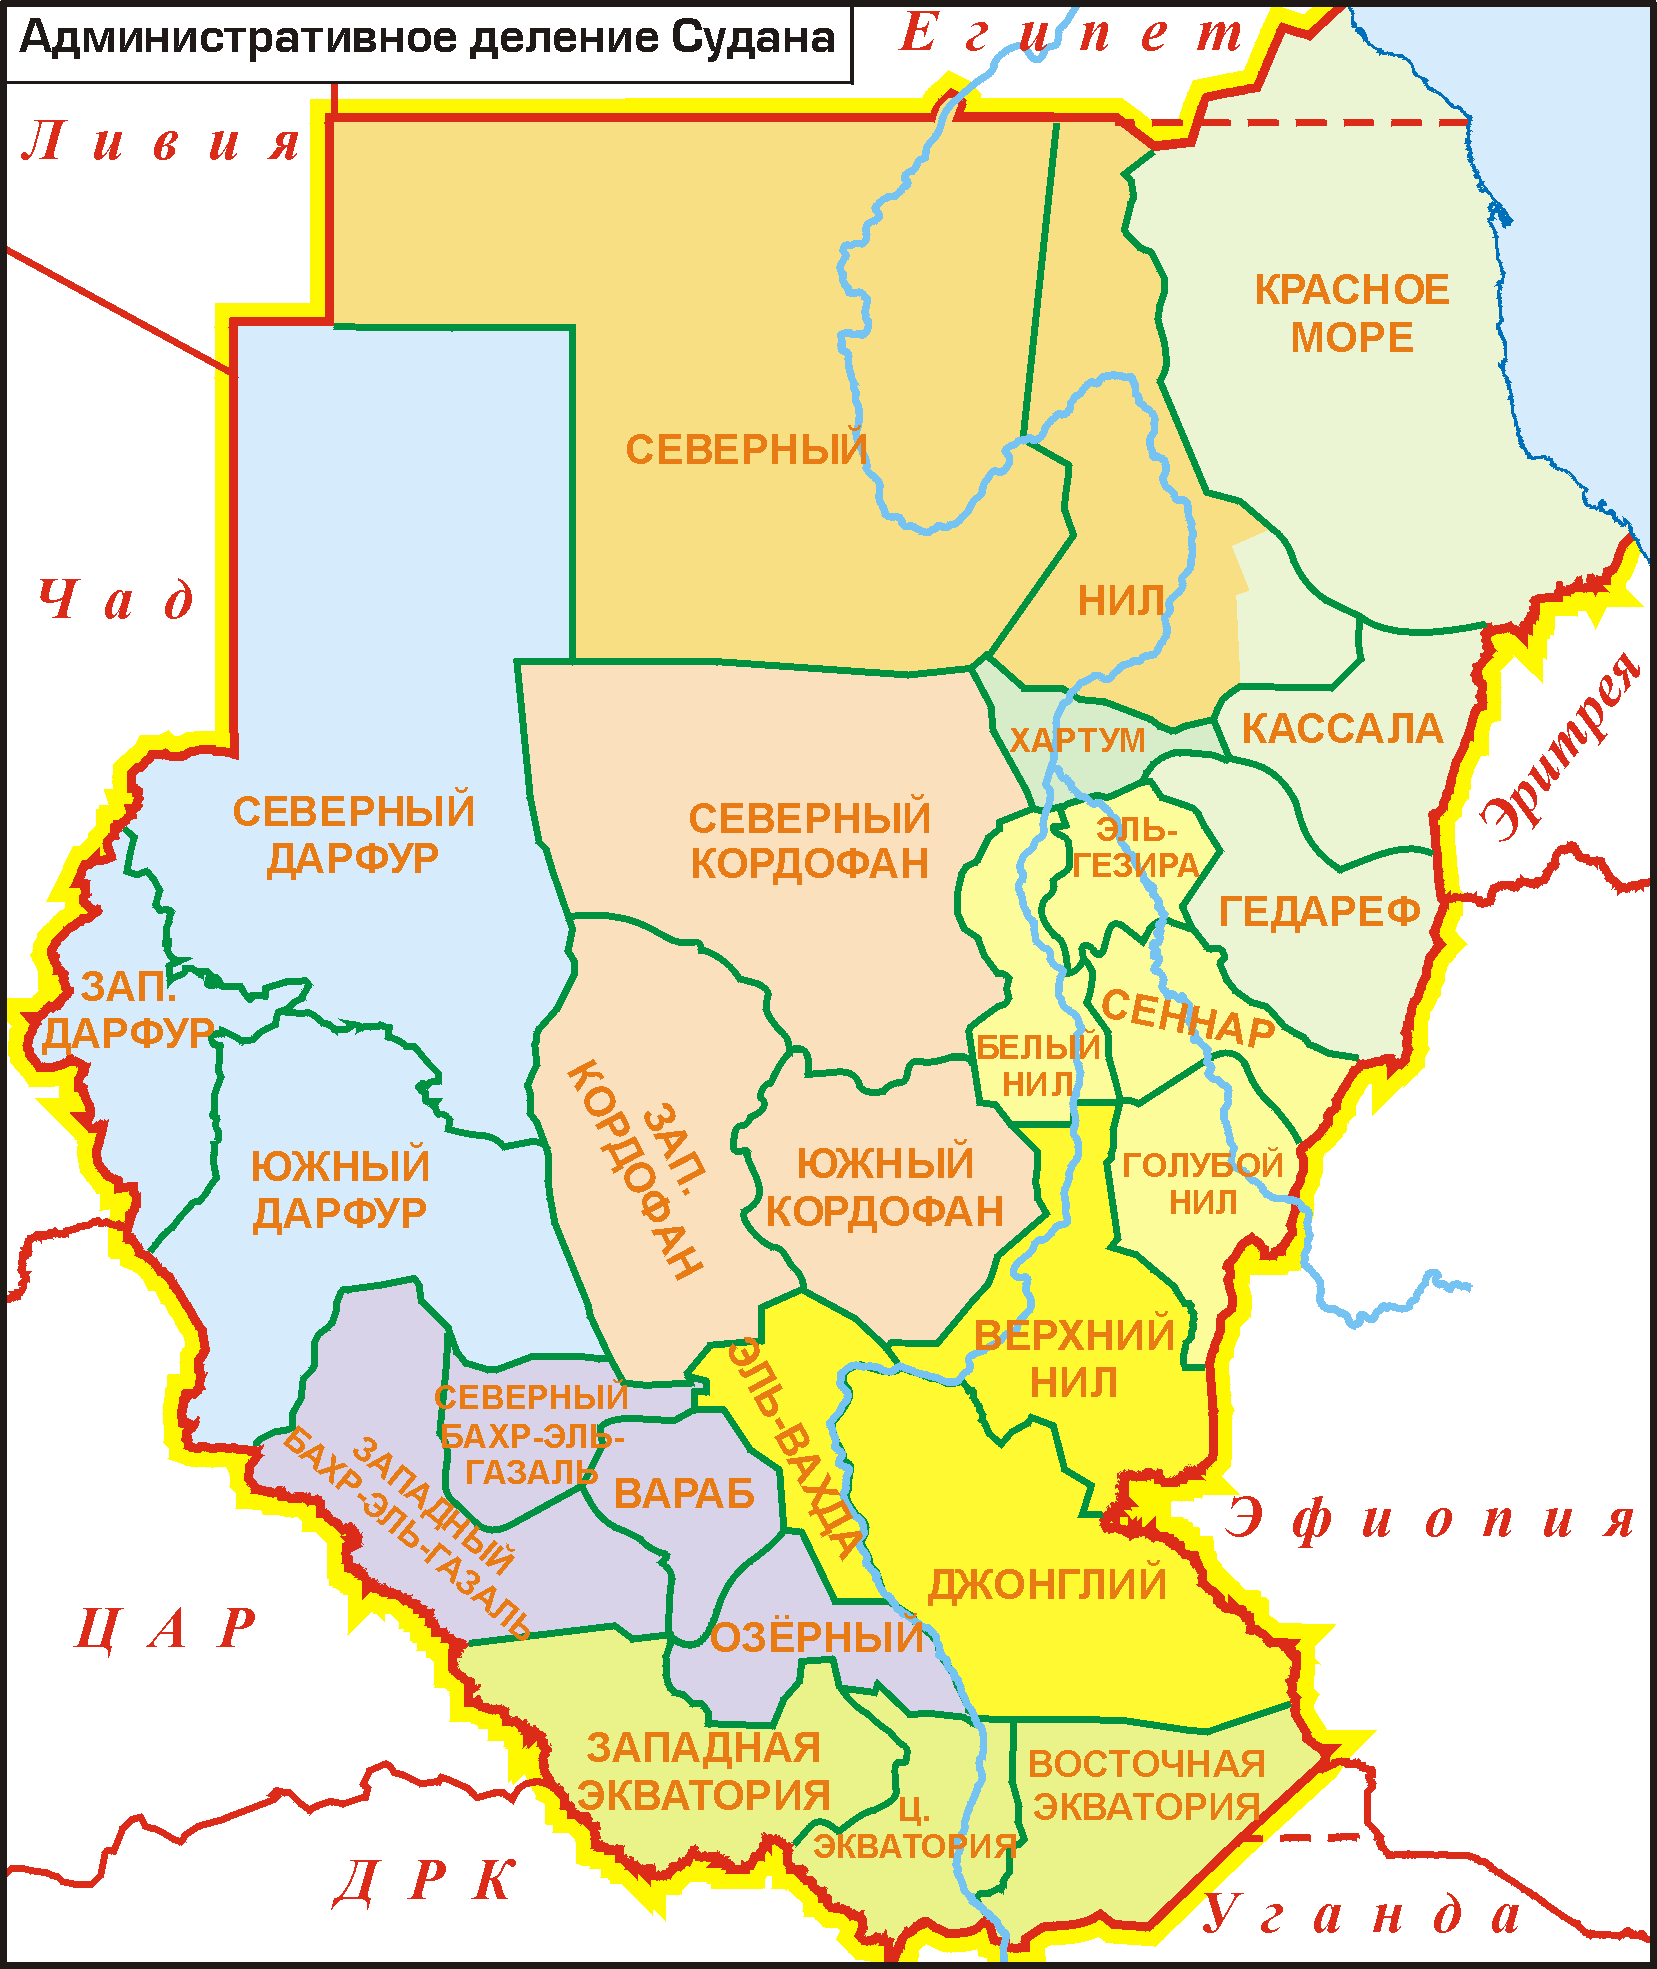 Sudan Adm Ru large map